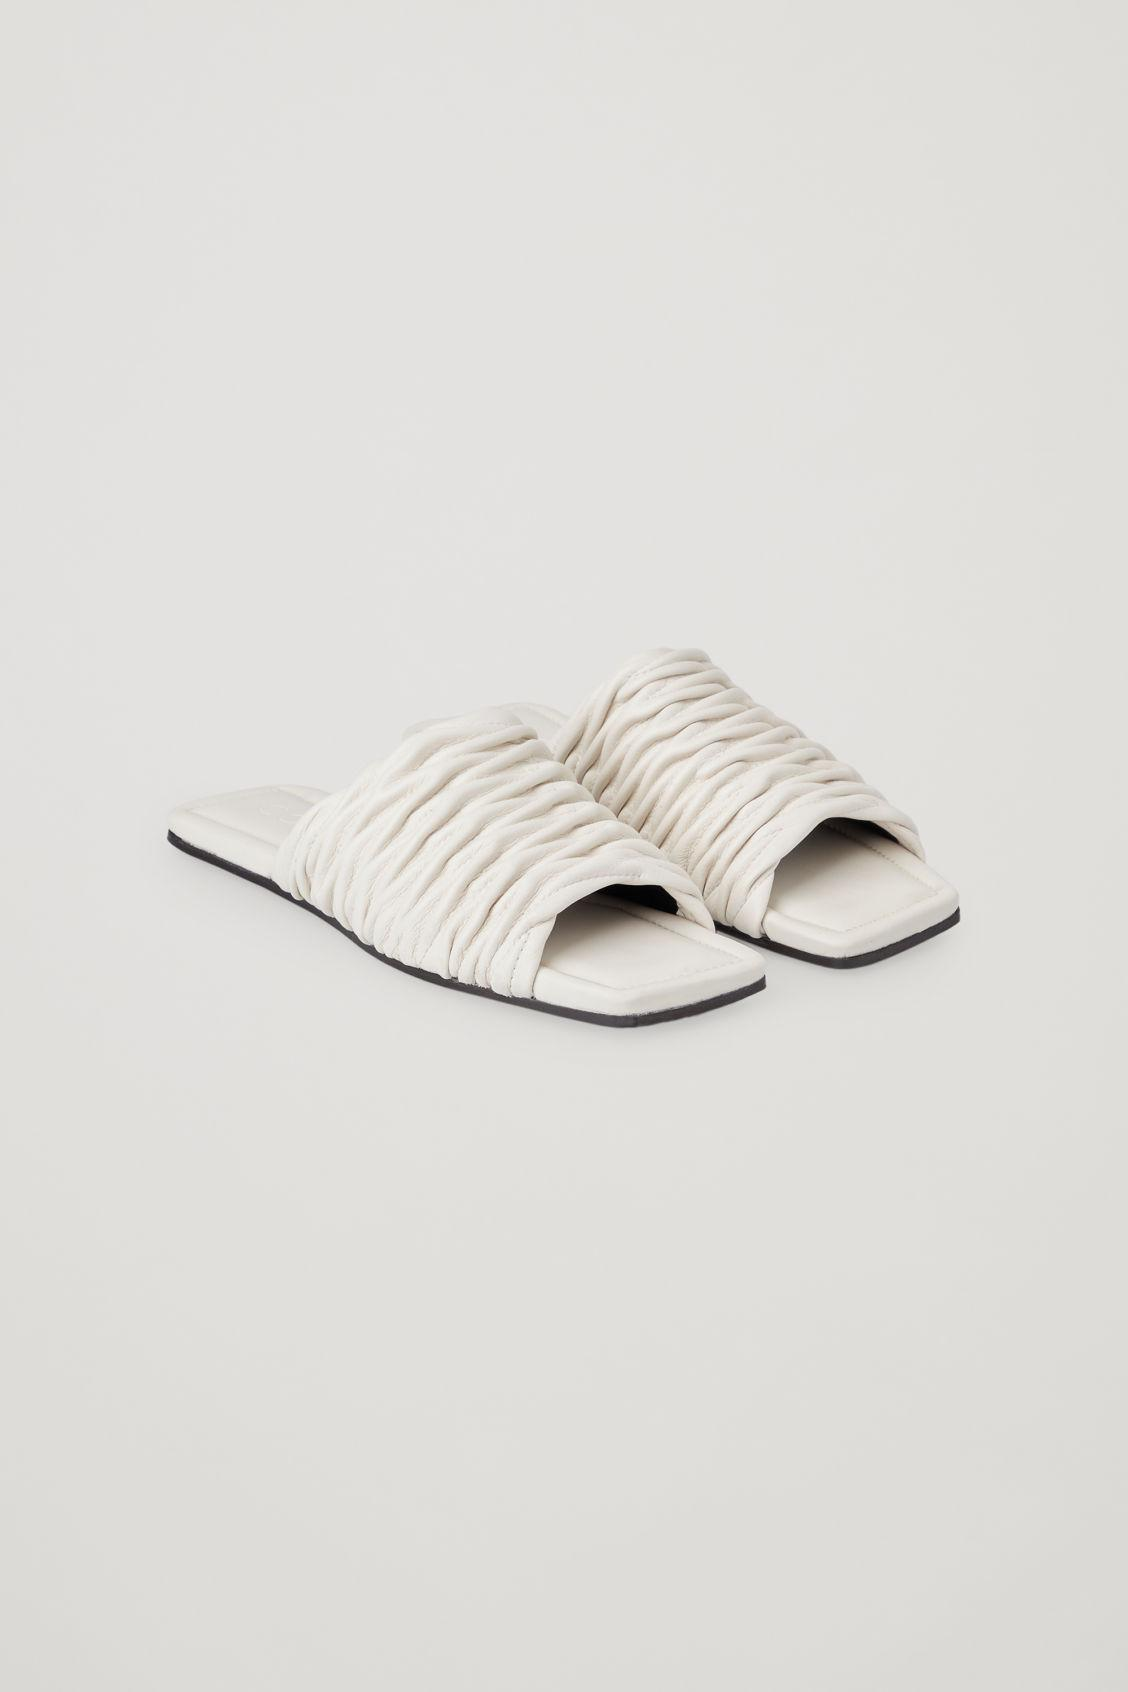 LEATHER SQUARE-TOE SANDALS